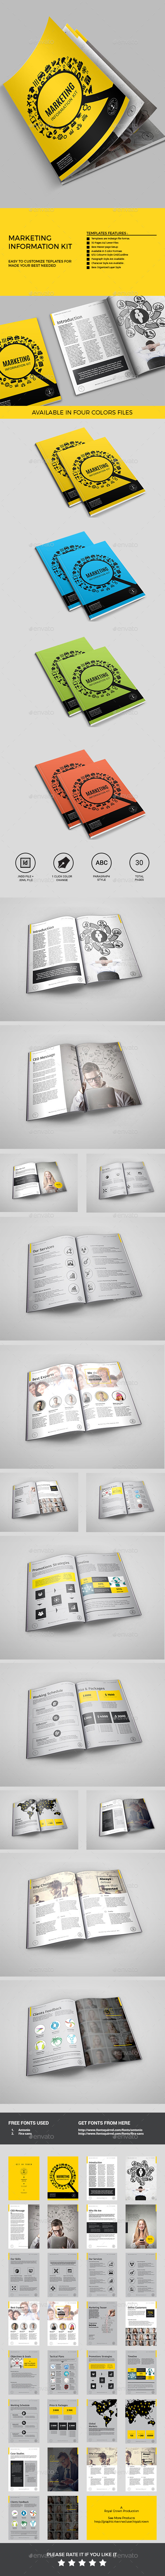 GraphicRiver Internet Marketing Proposal 11478569